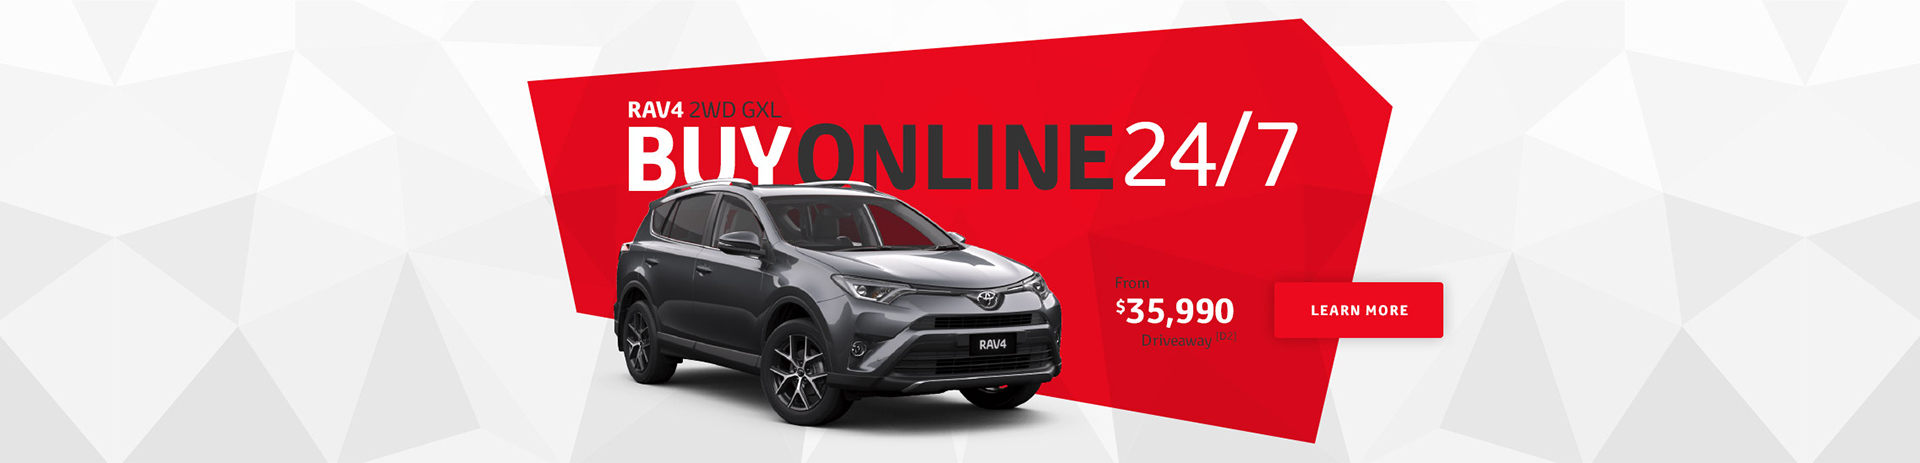 Order and Collect - RAV4